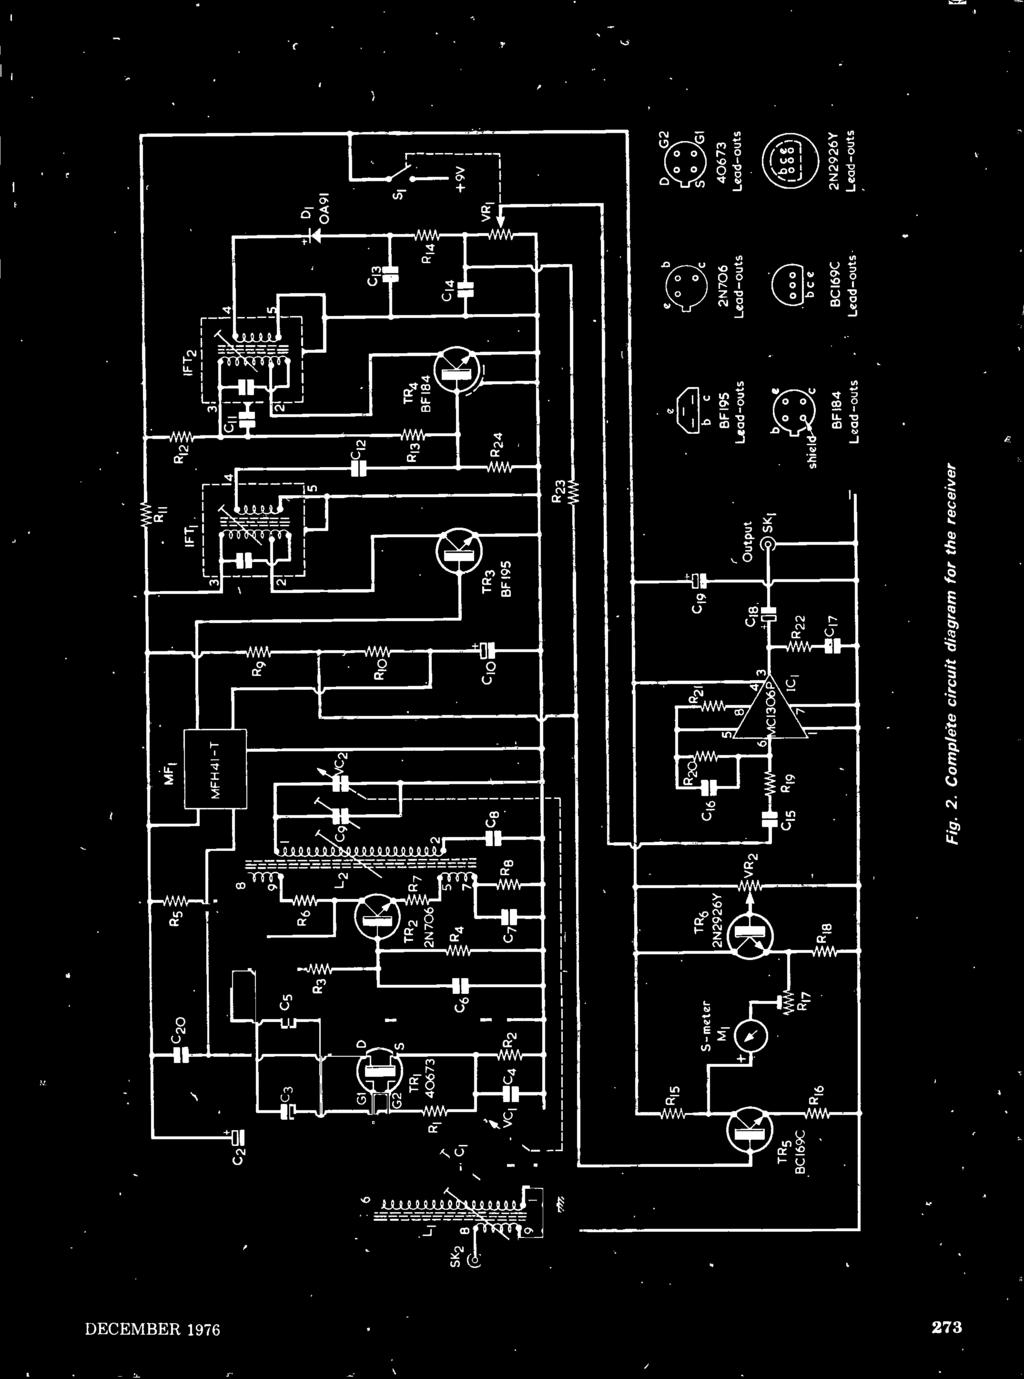 Imoiisiii Uoi3ithisnoo Os11n A311111f 3d Pdf 272 Grooming Mower Belt Diagram Further Mtd Lawn Wiring Complete Circuit For The Receiver Di 0a91 C13 R13 Tr4 8f